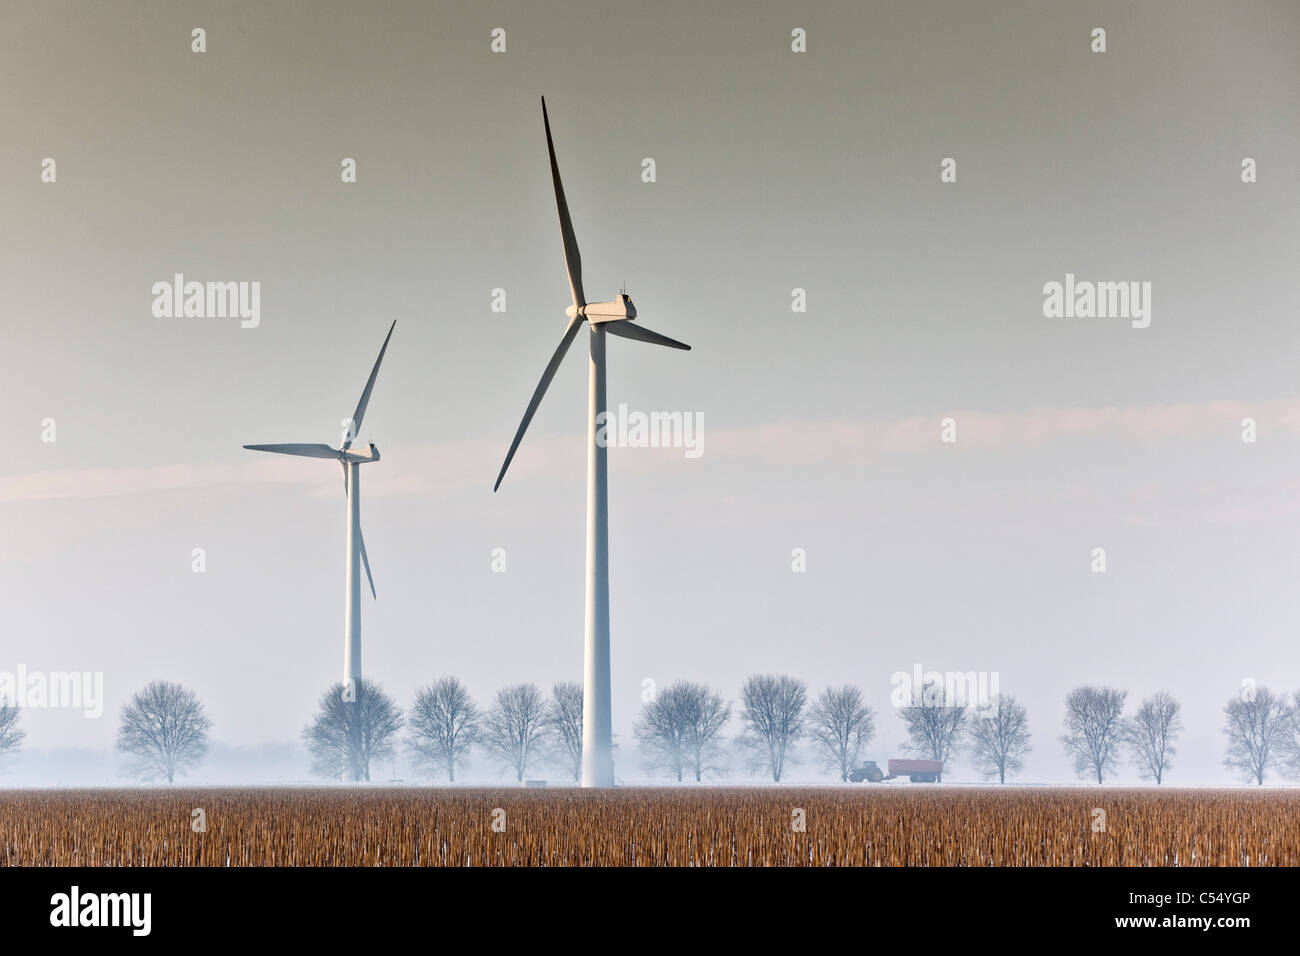 The Netherlands, Lelystad, Windturbines and tractor - Stock Image